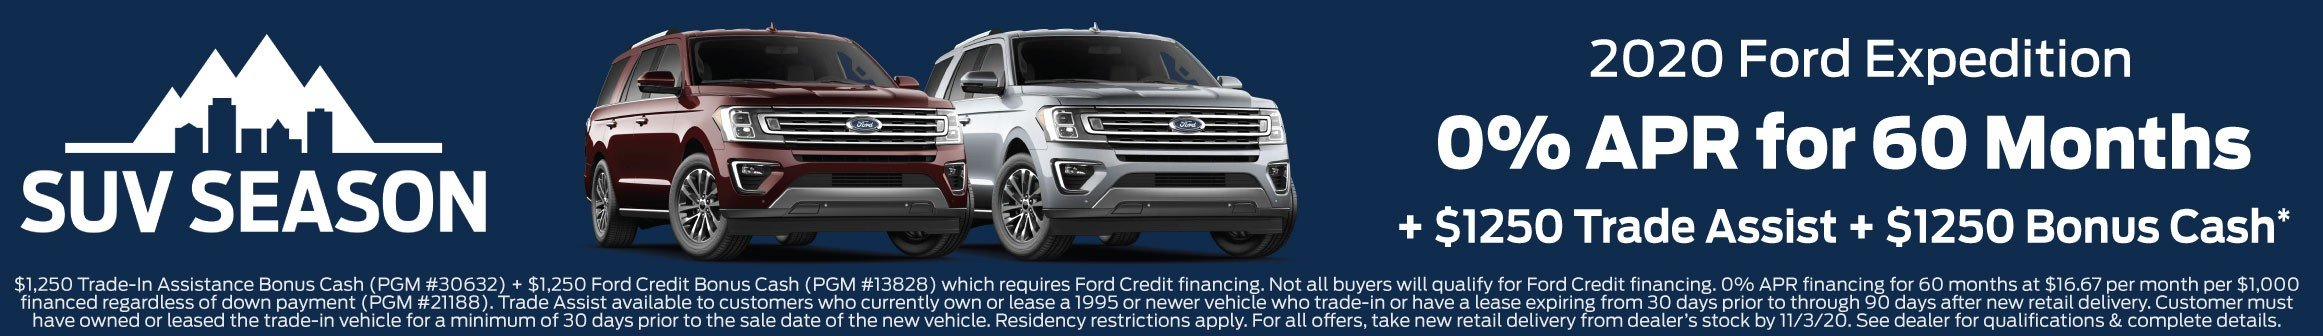 Ford Expedition Offer 11-3-2020